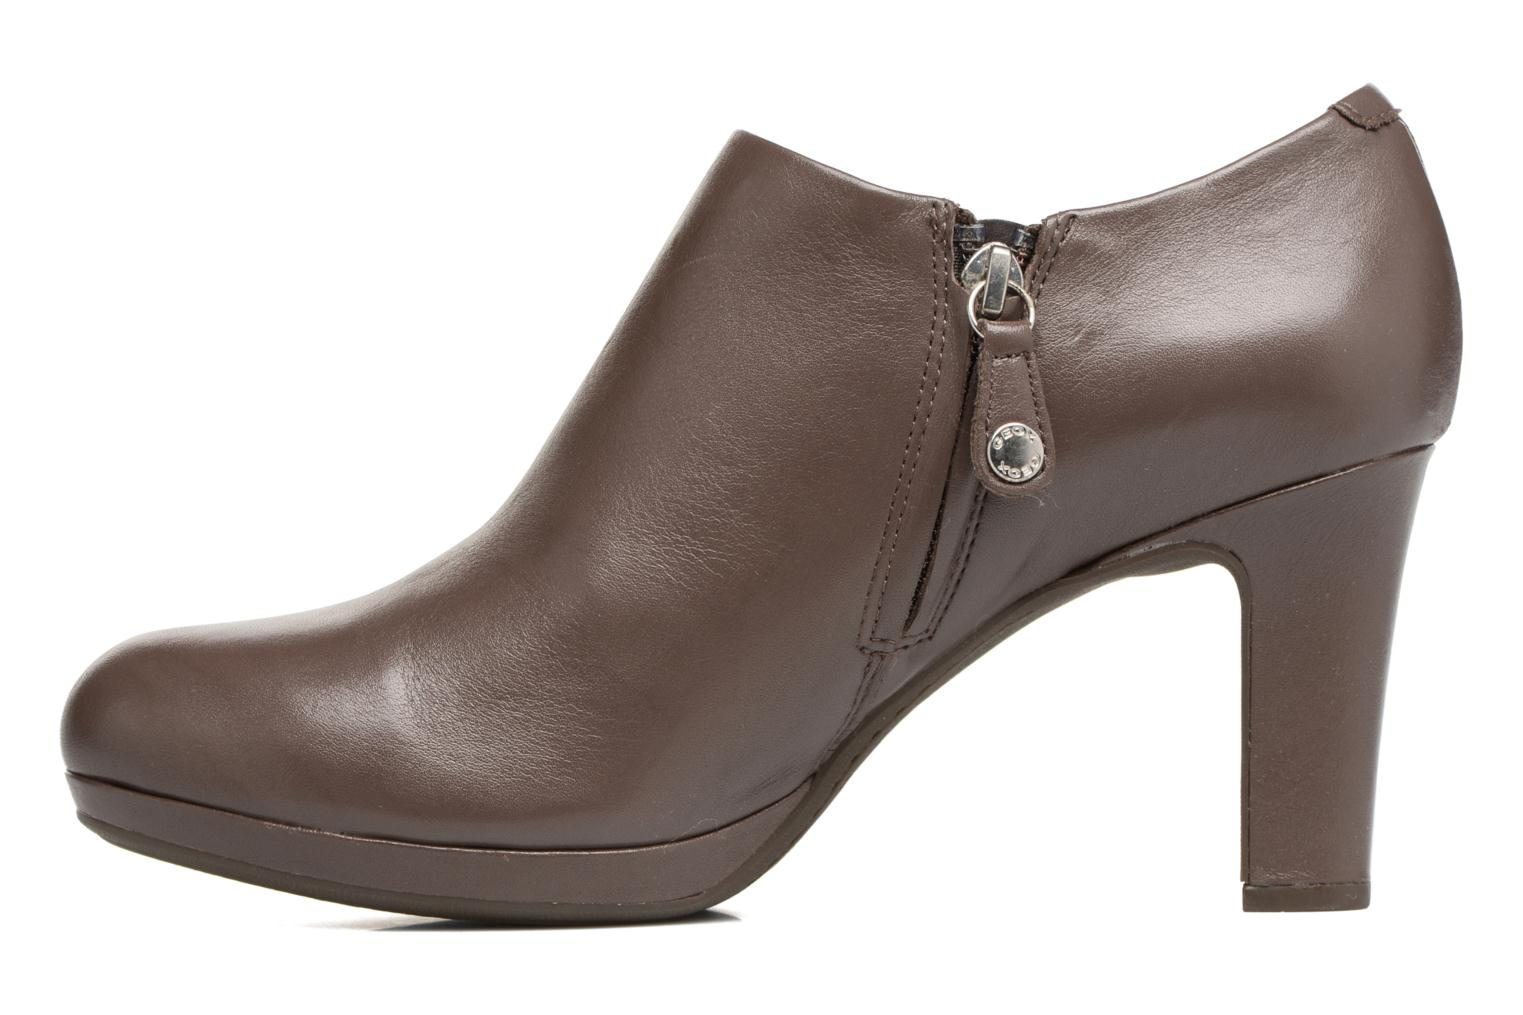 Bottines et boots Geox D LANA B D54Q6B Marron vue face